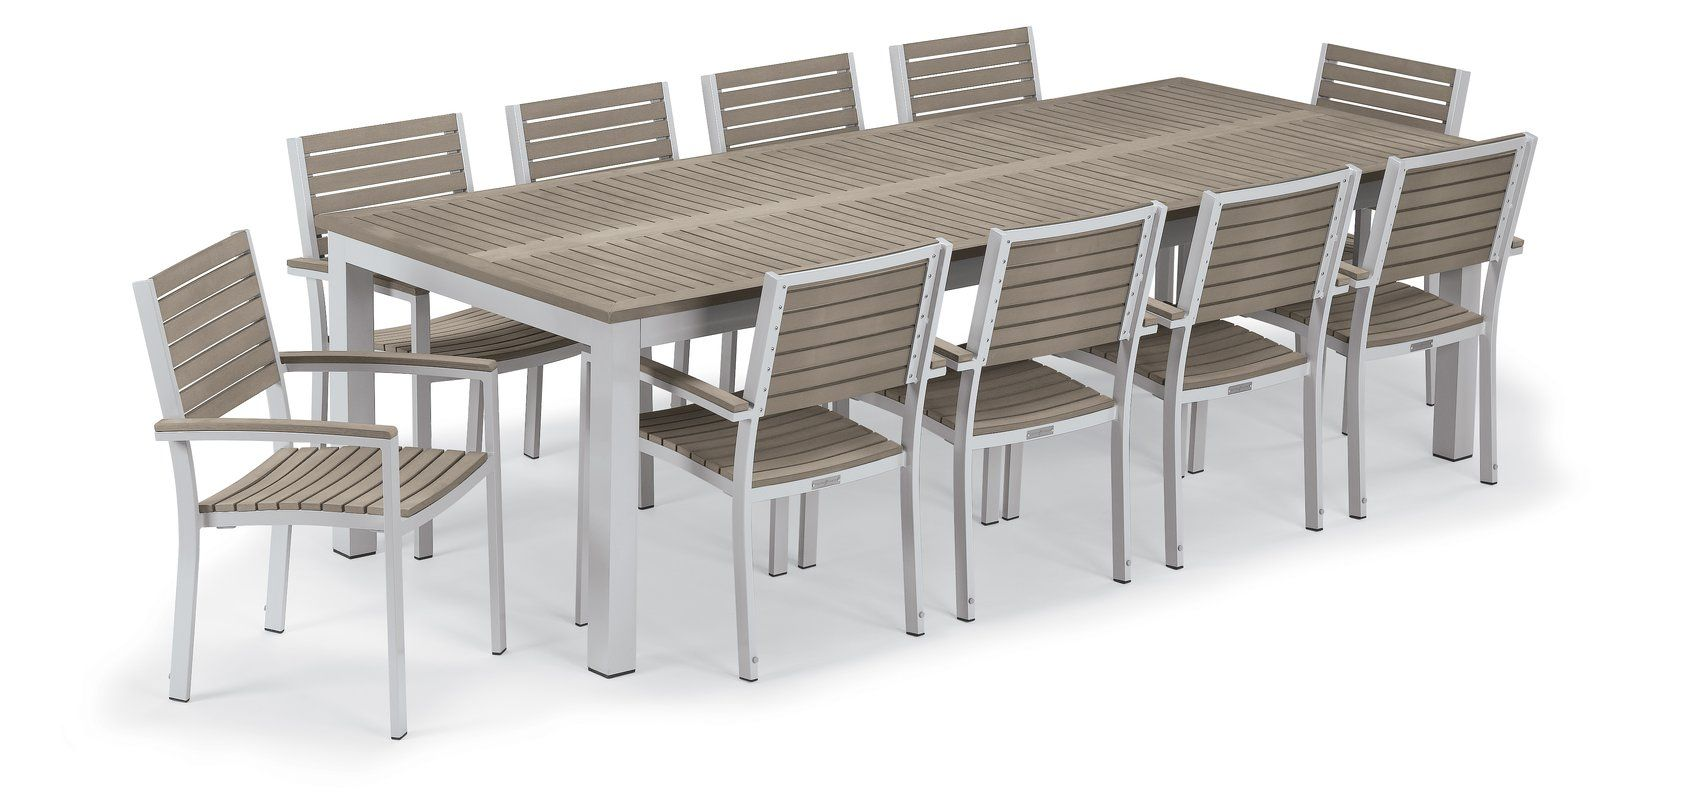 Maclin 11 Piece Dining Set Patio Dining Set Outdoor Furniture Sets Patio Dining Chairs